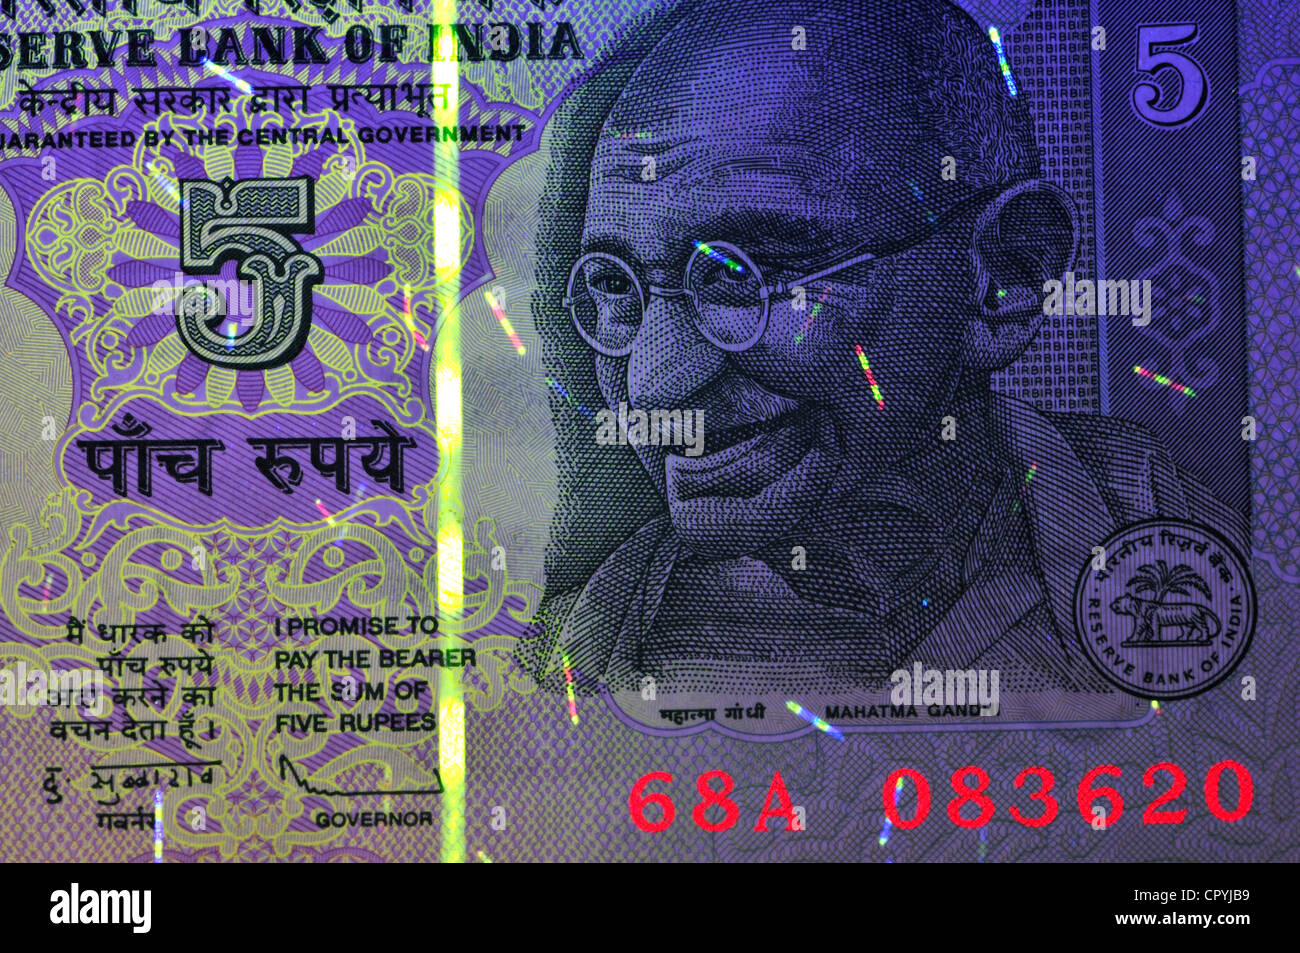 Banknote in ultraviolet light showing otherwise invisible security features. India, 5 Rupees - Stock Image